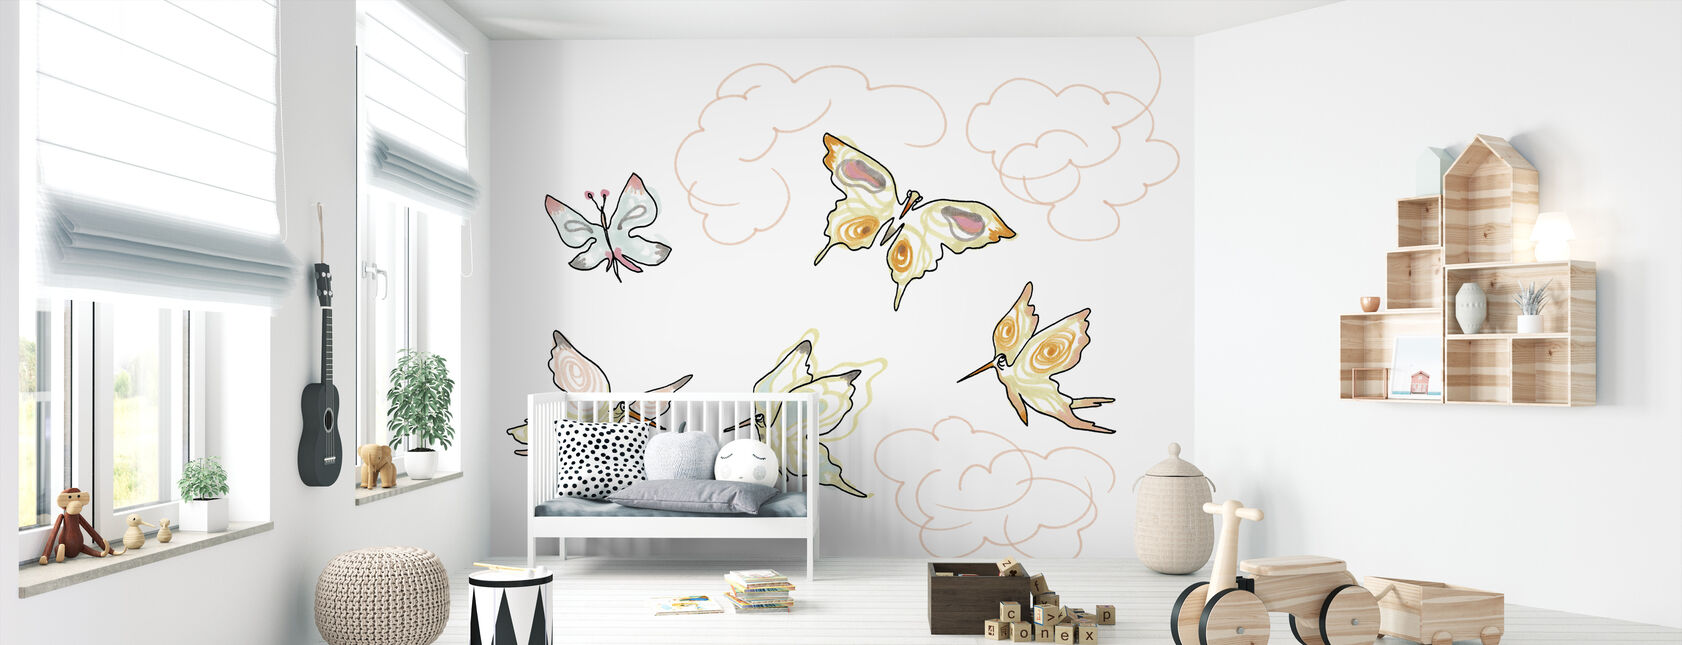 Whose Butterfly 2 - Wallpaper - Nursery